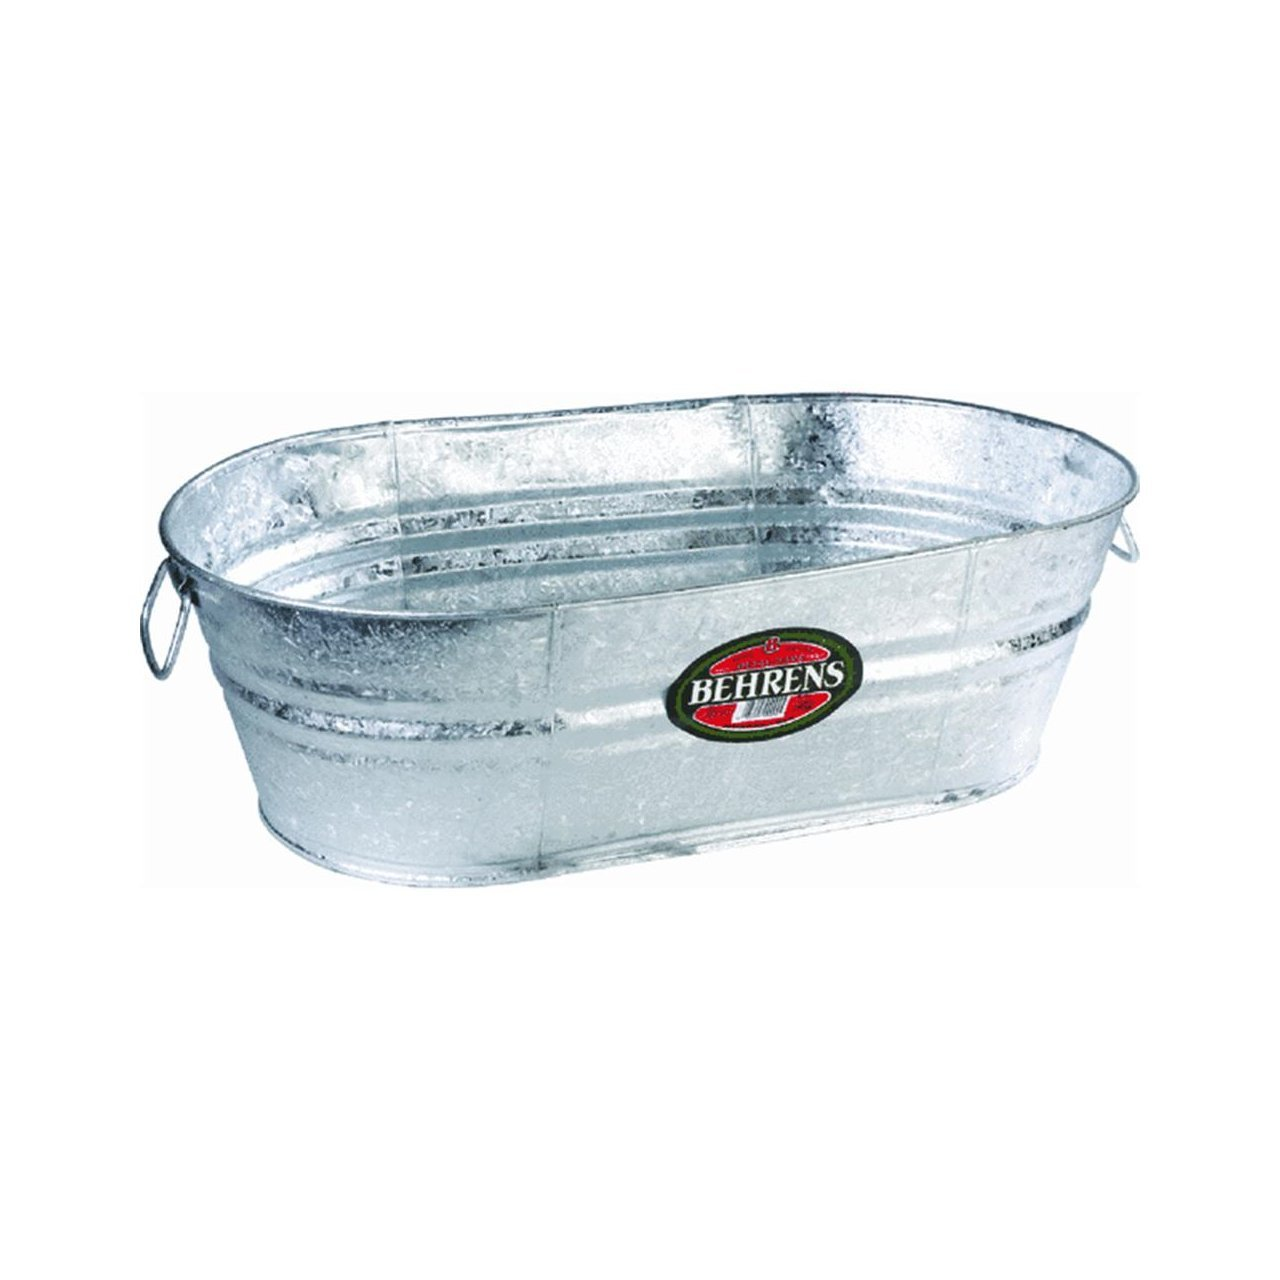 Behrens Oval Hot Dipped Steel Tub